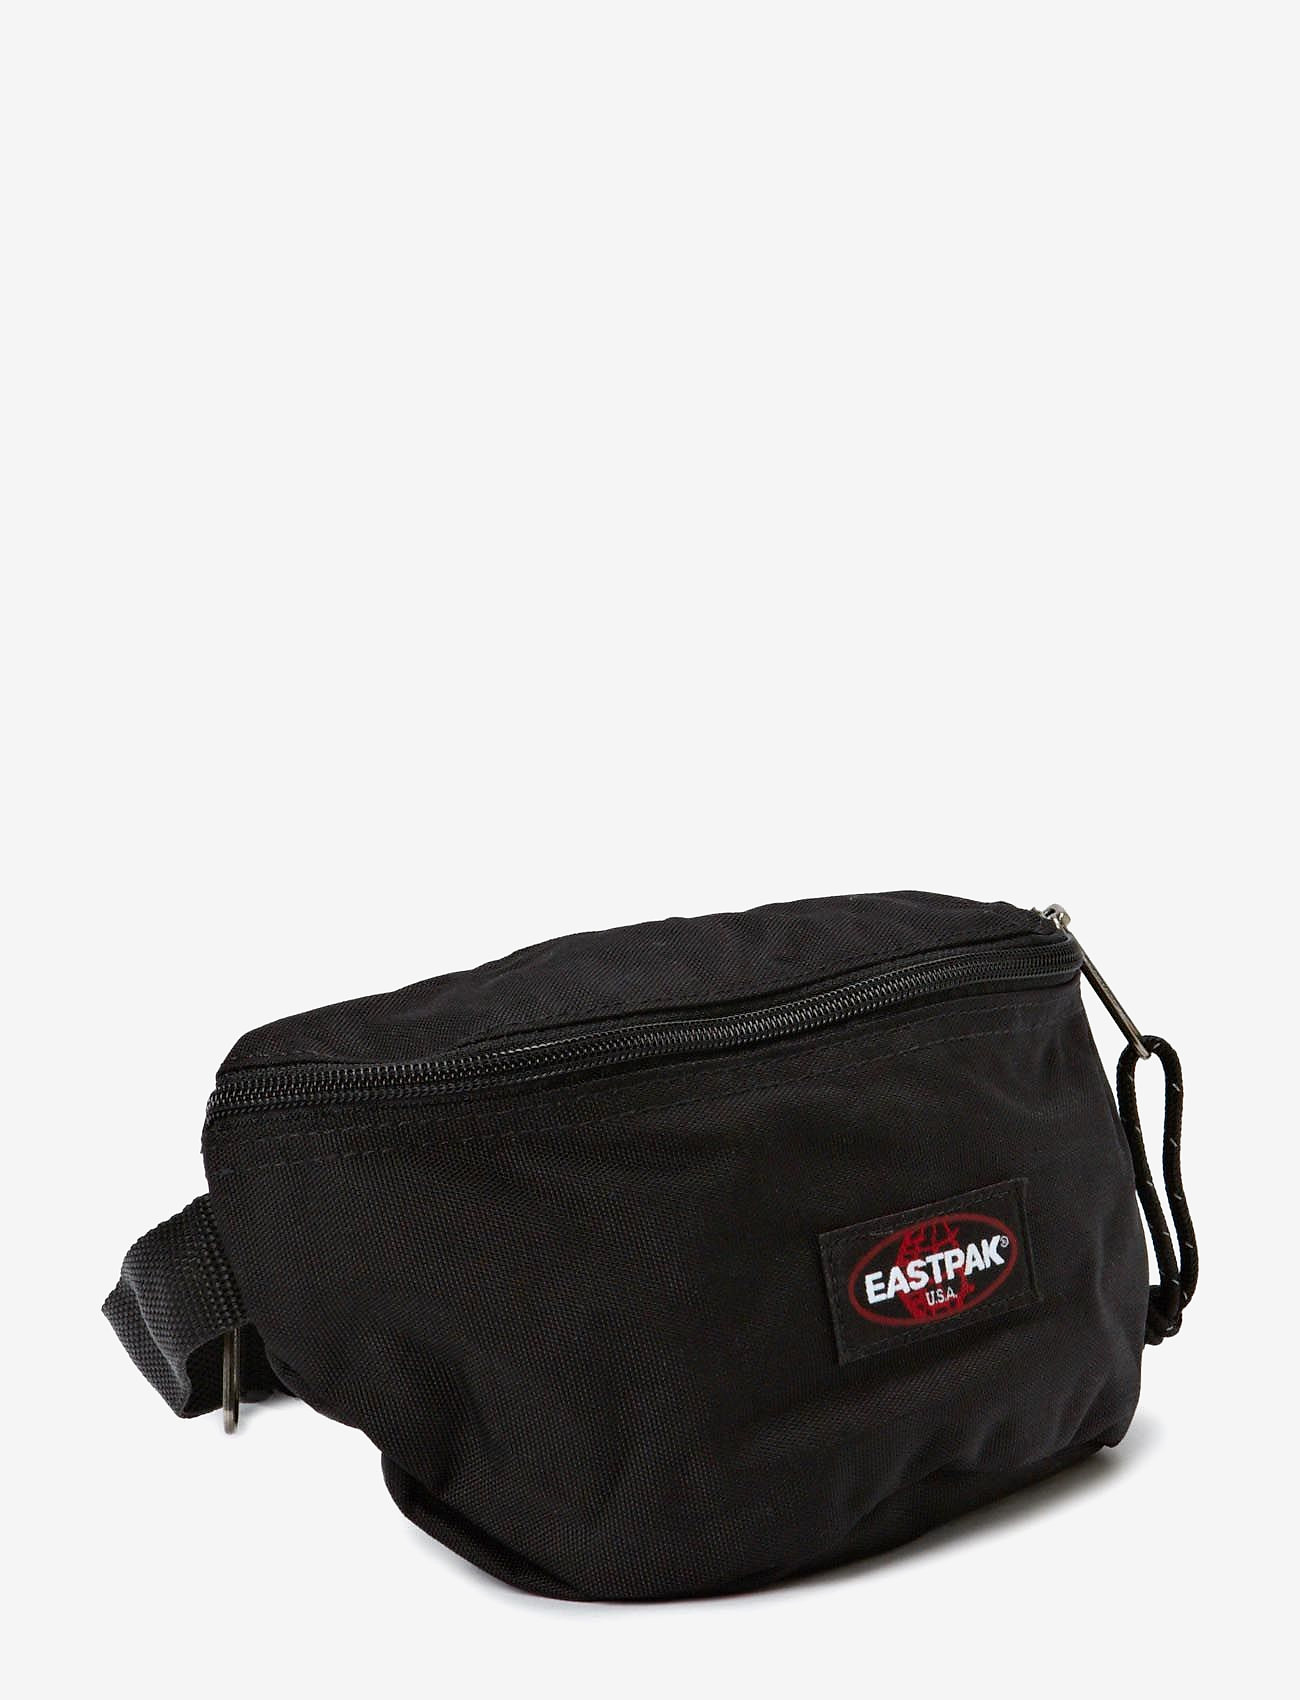 Eastpak - SPRINGER - magväskor - black - 1